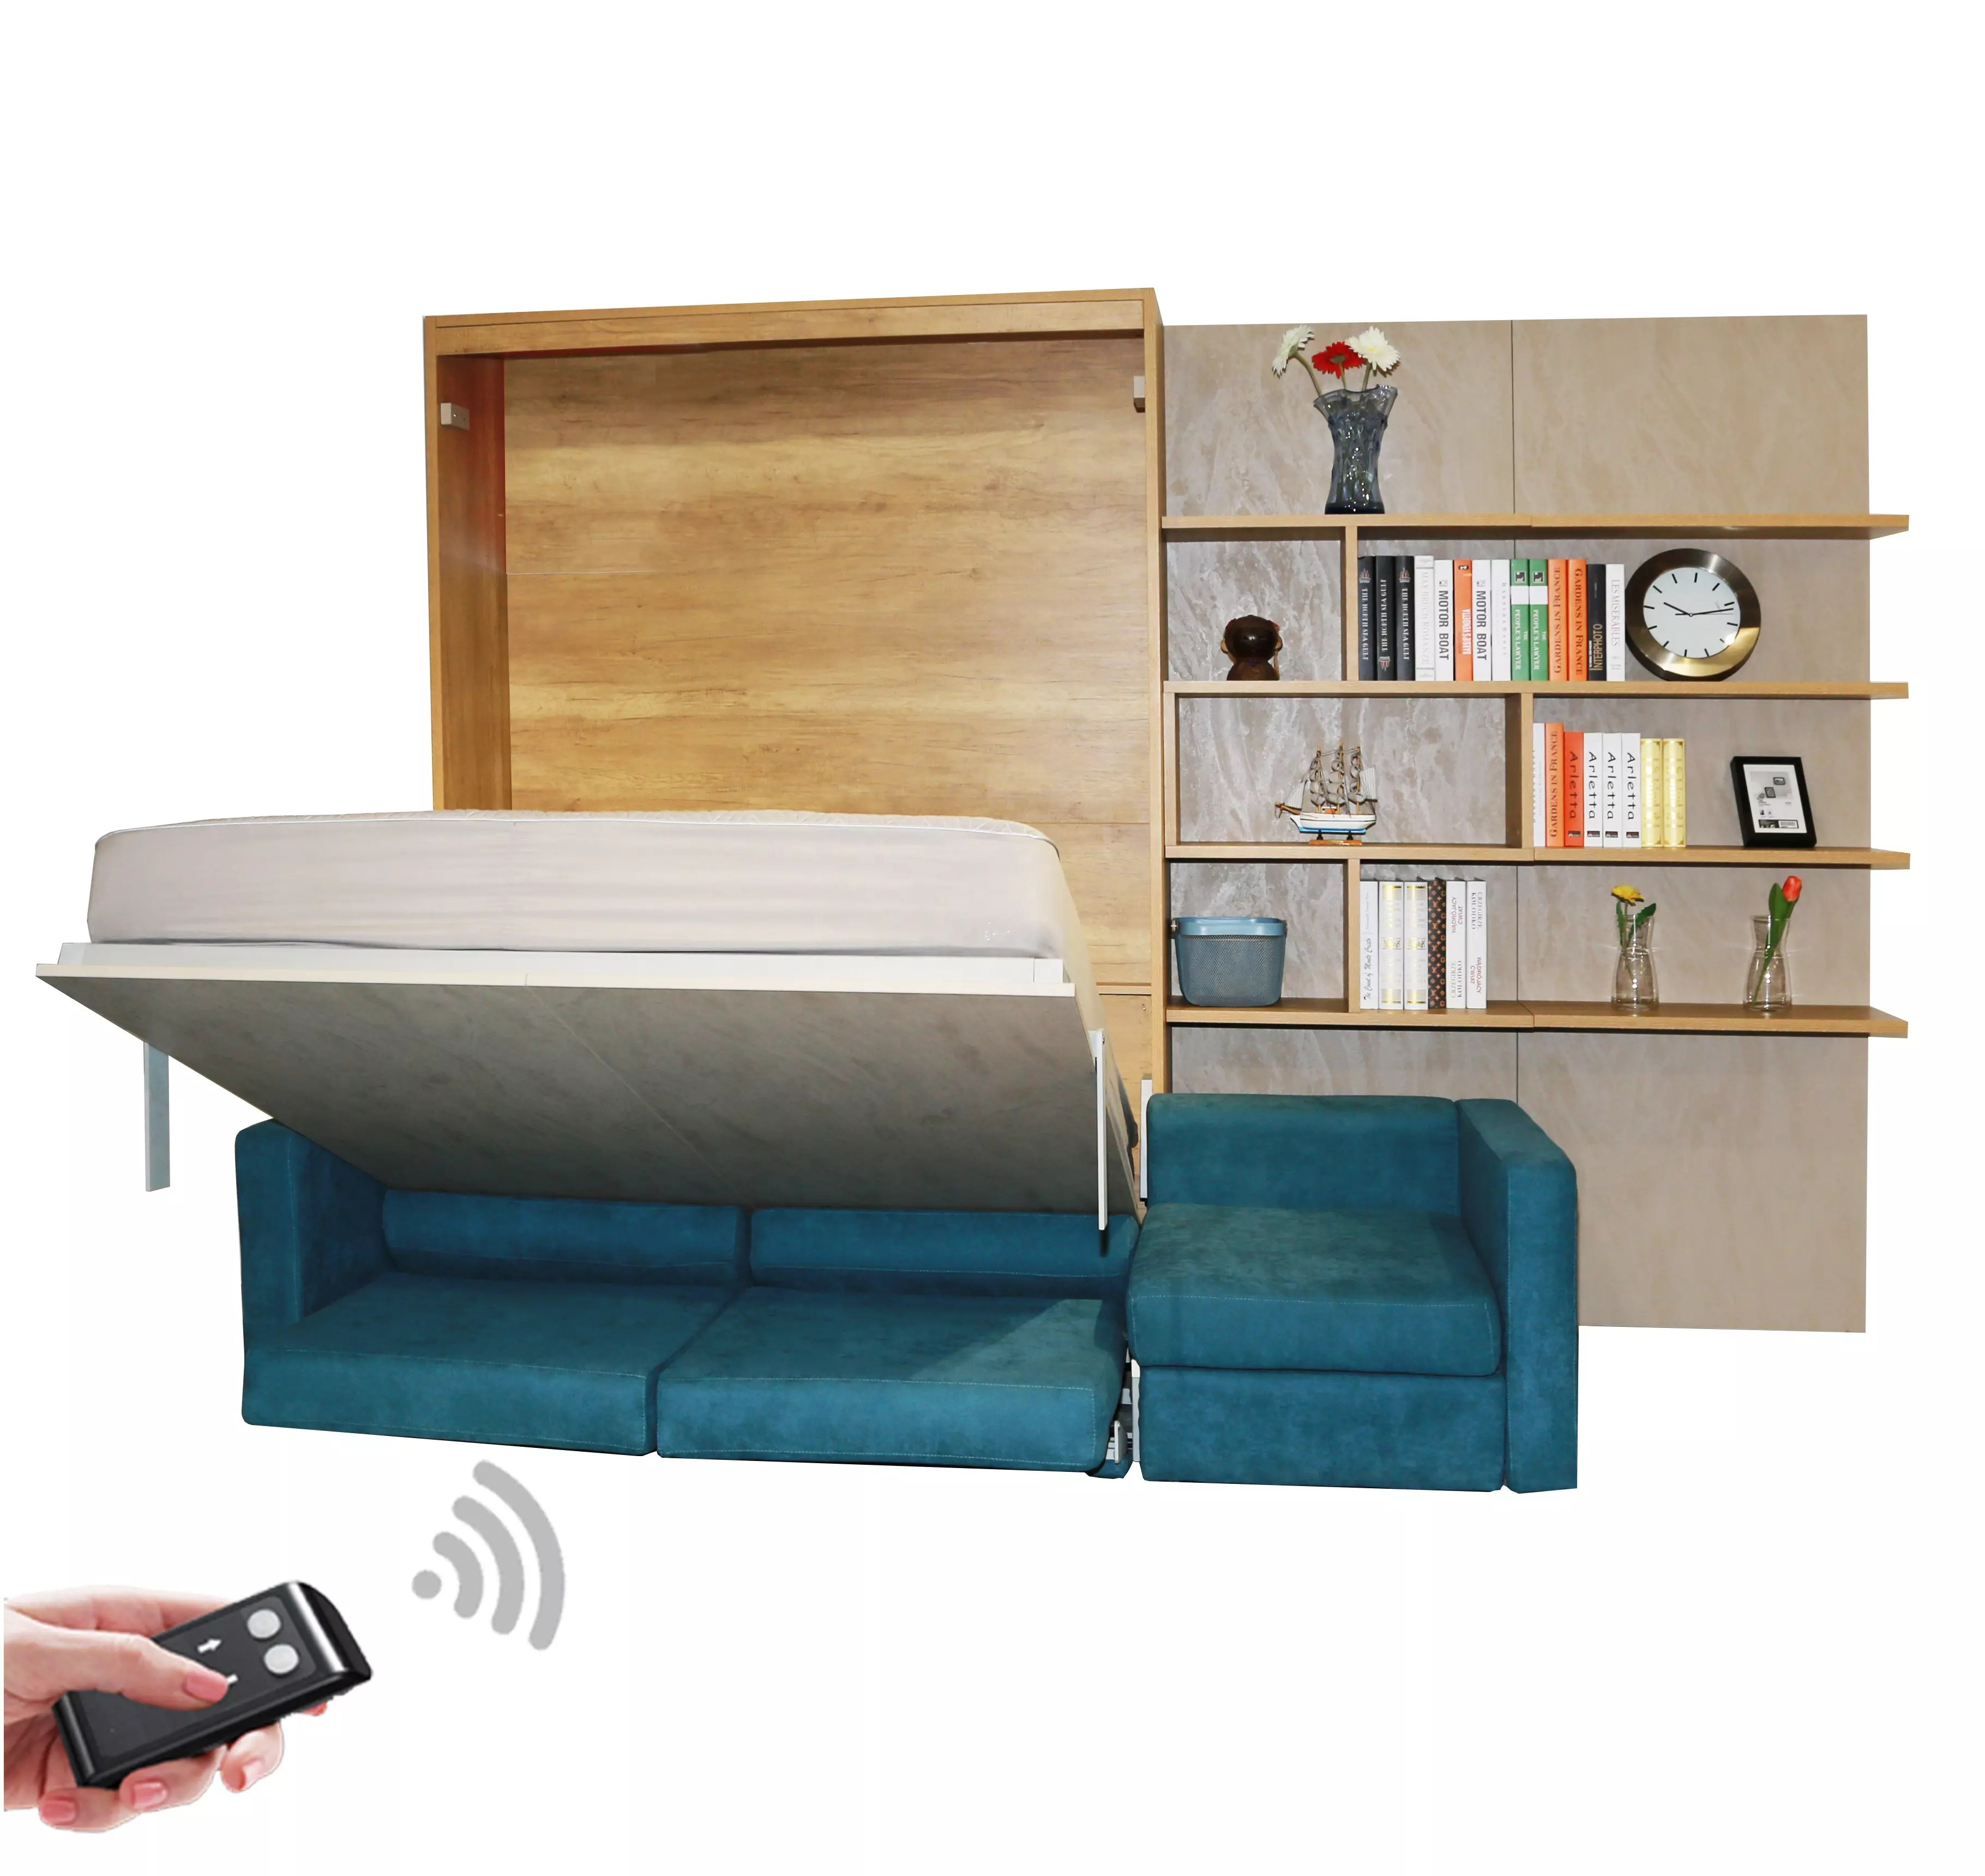 New Stystle Wall Bed